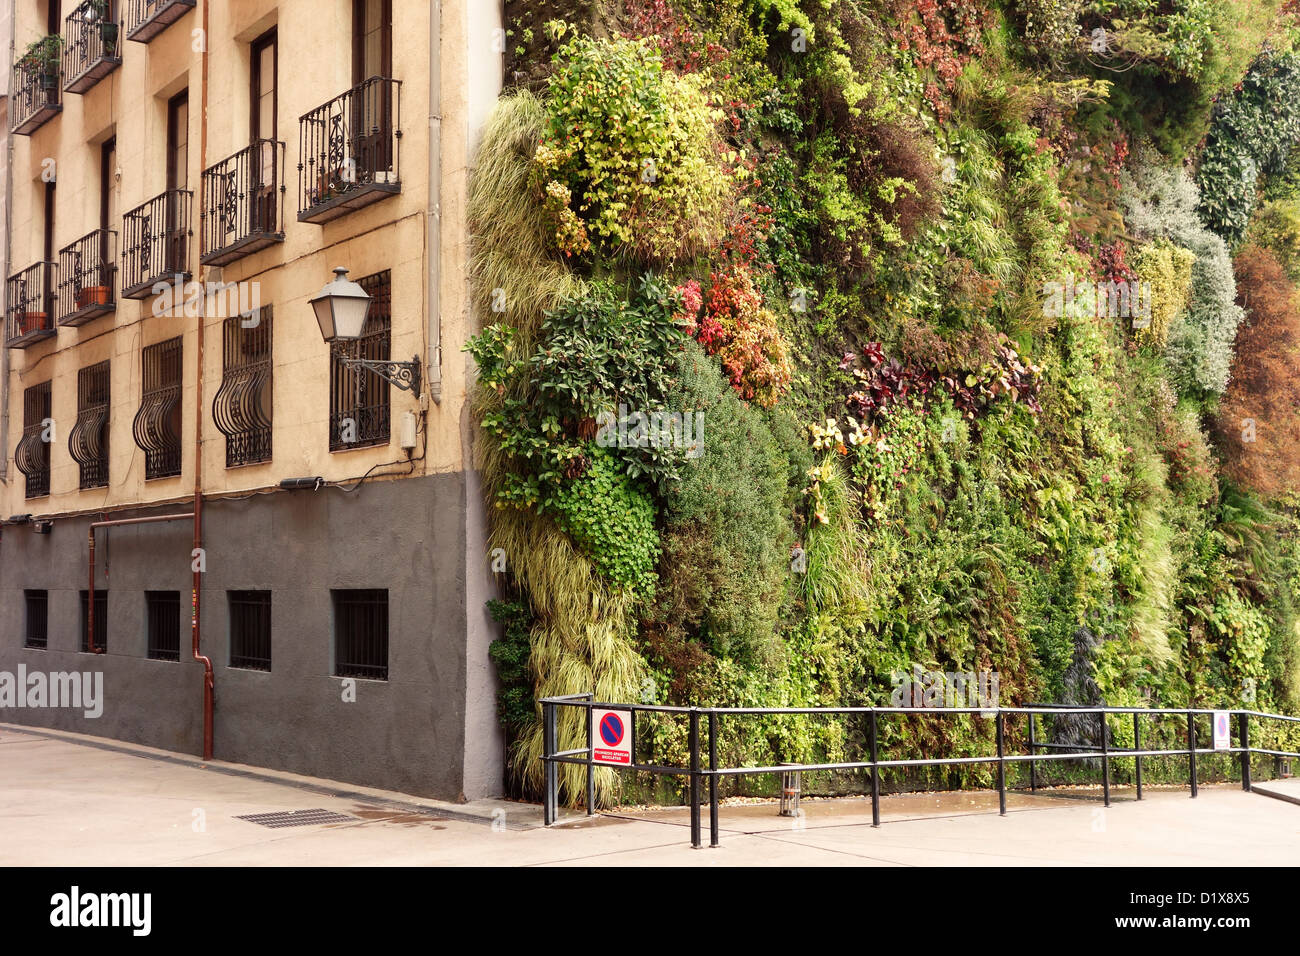 Living wall stock photos living wall stock images alamy - Giardino verticale madrid ...